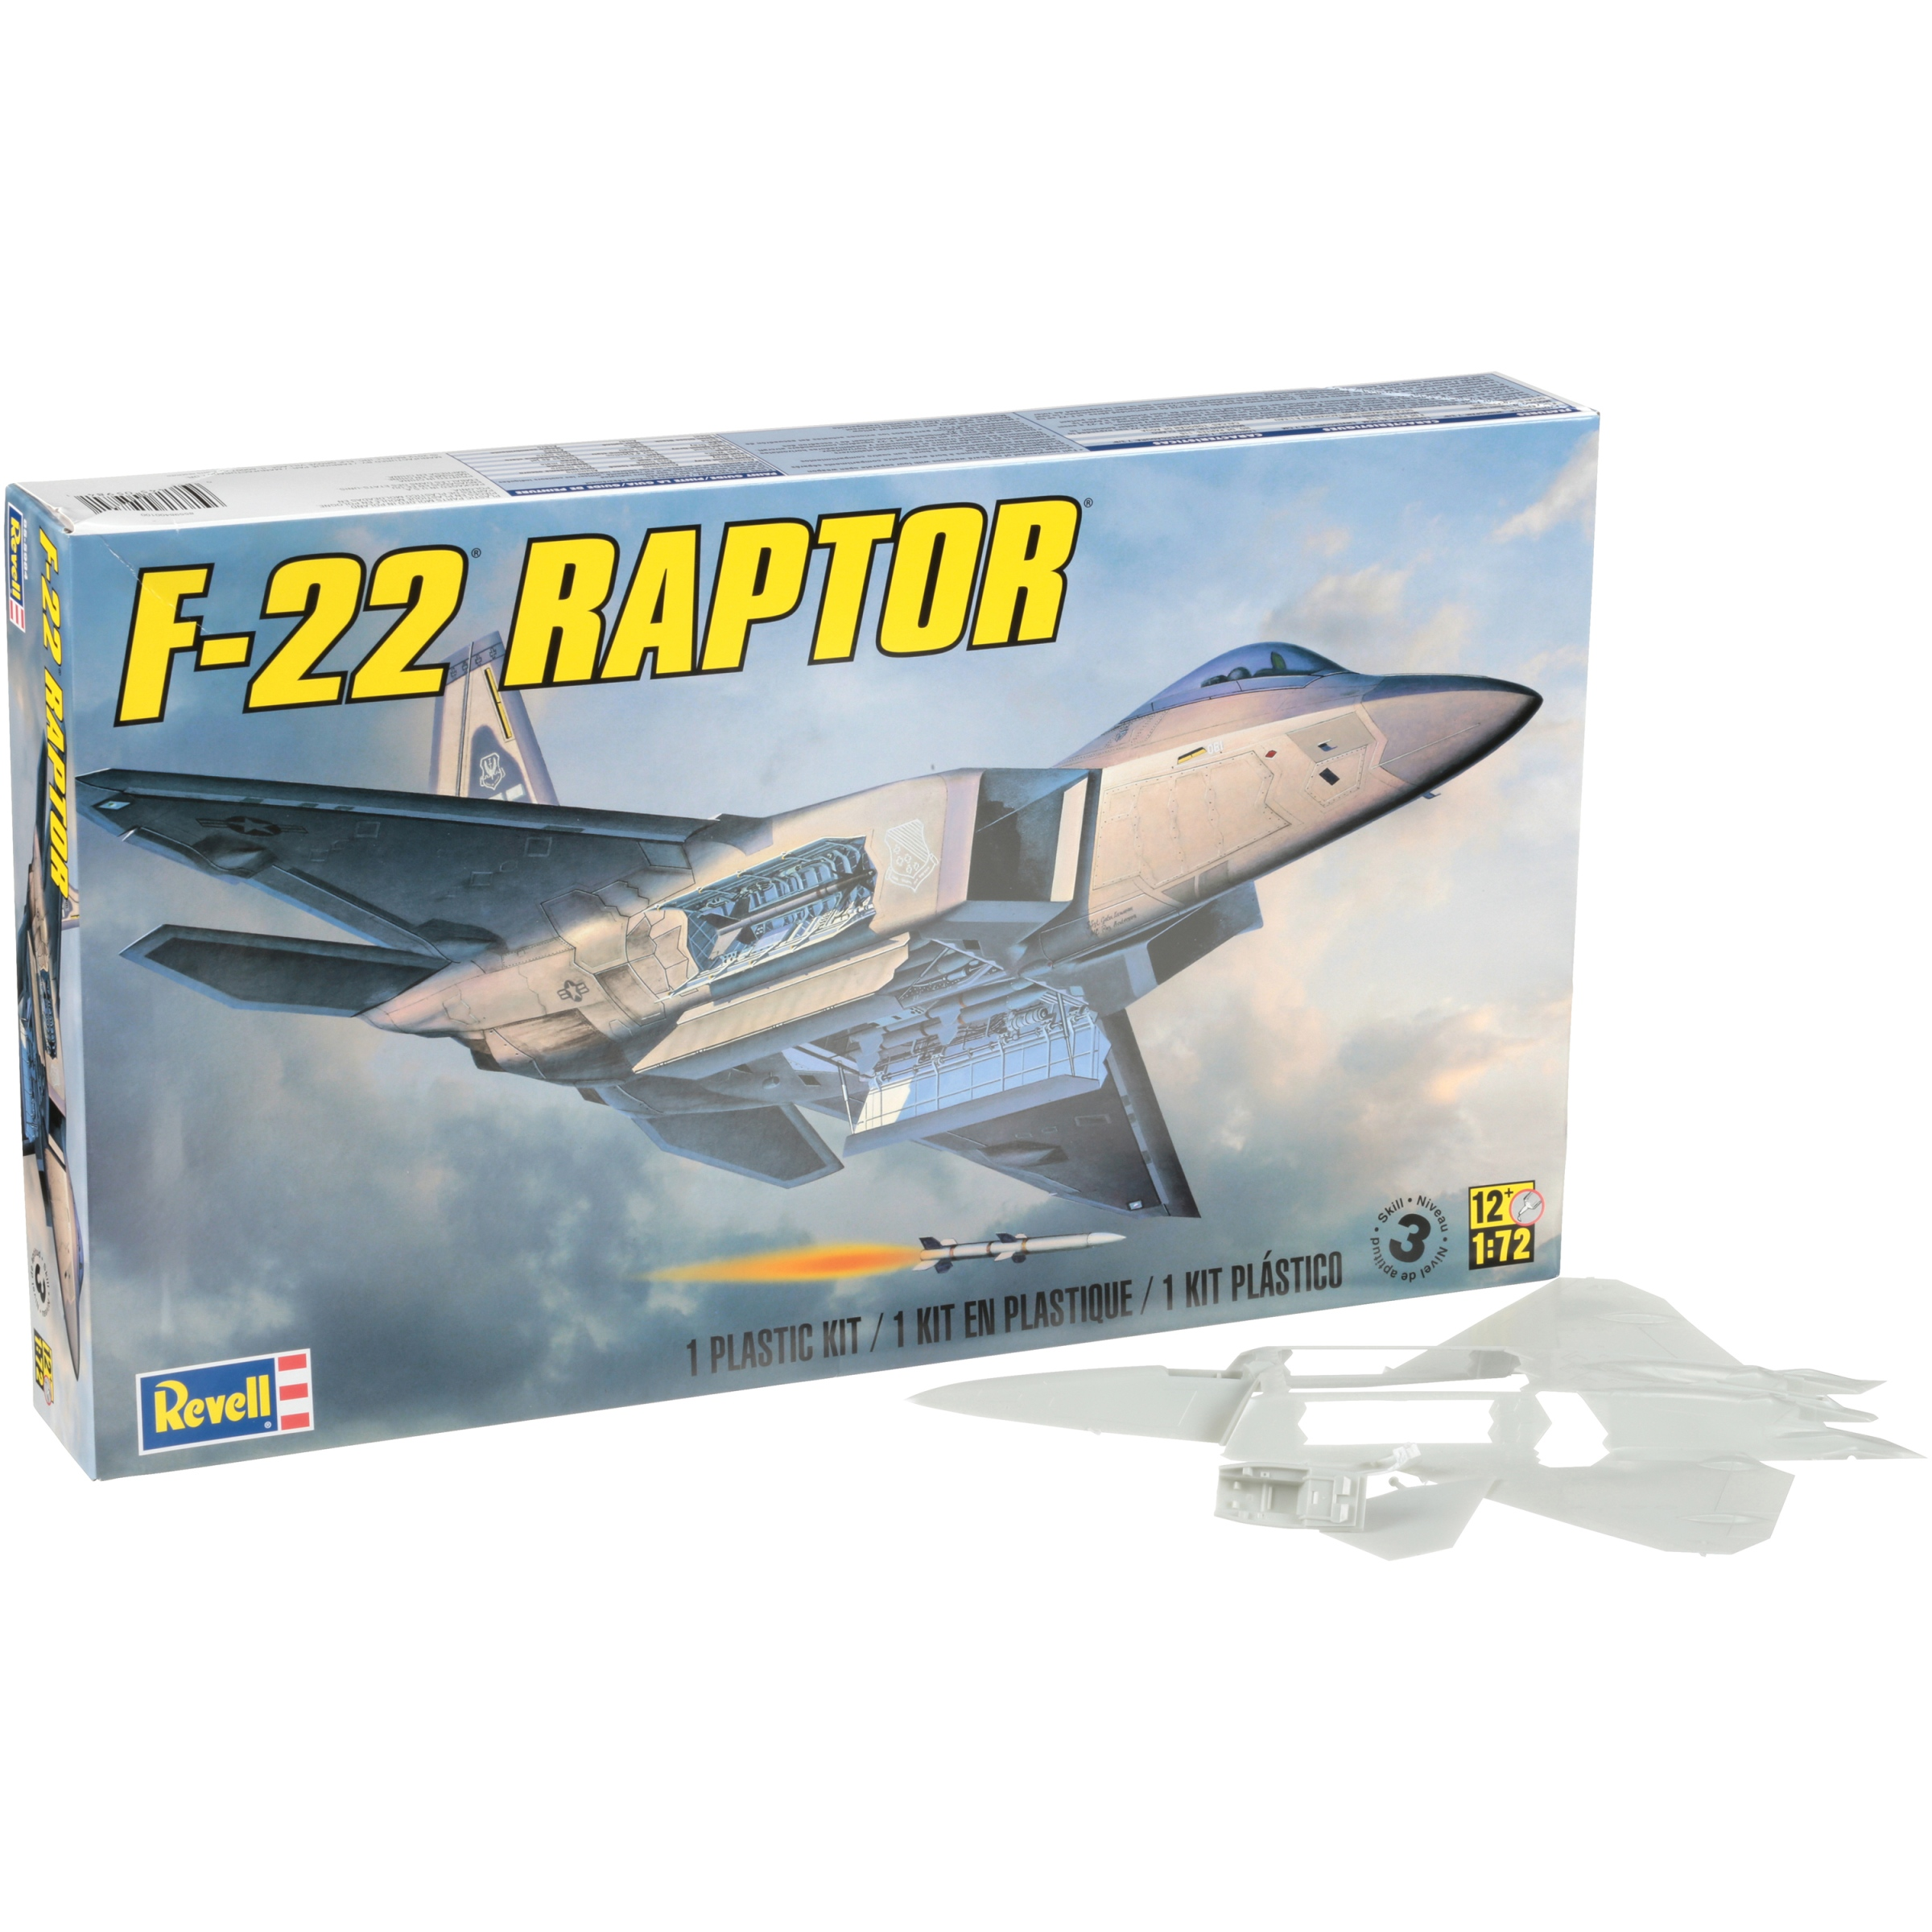 Revell® F-22 Raptor Plastic Model Plane Kit 116 pc Box